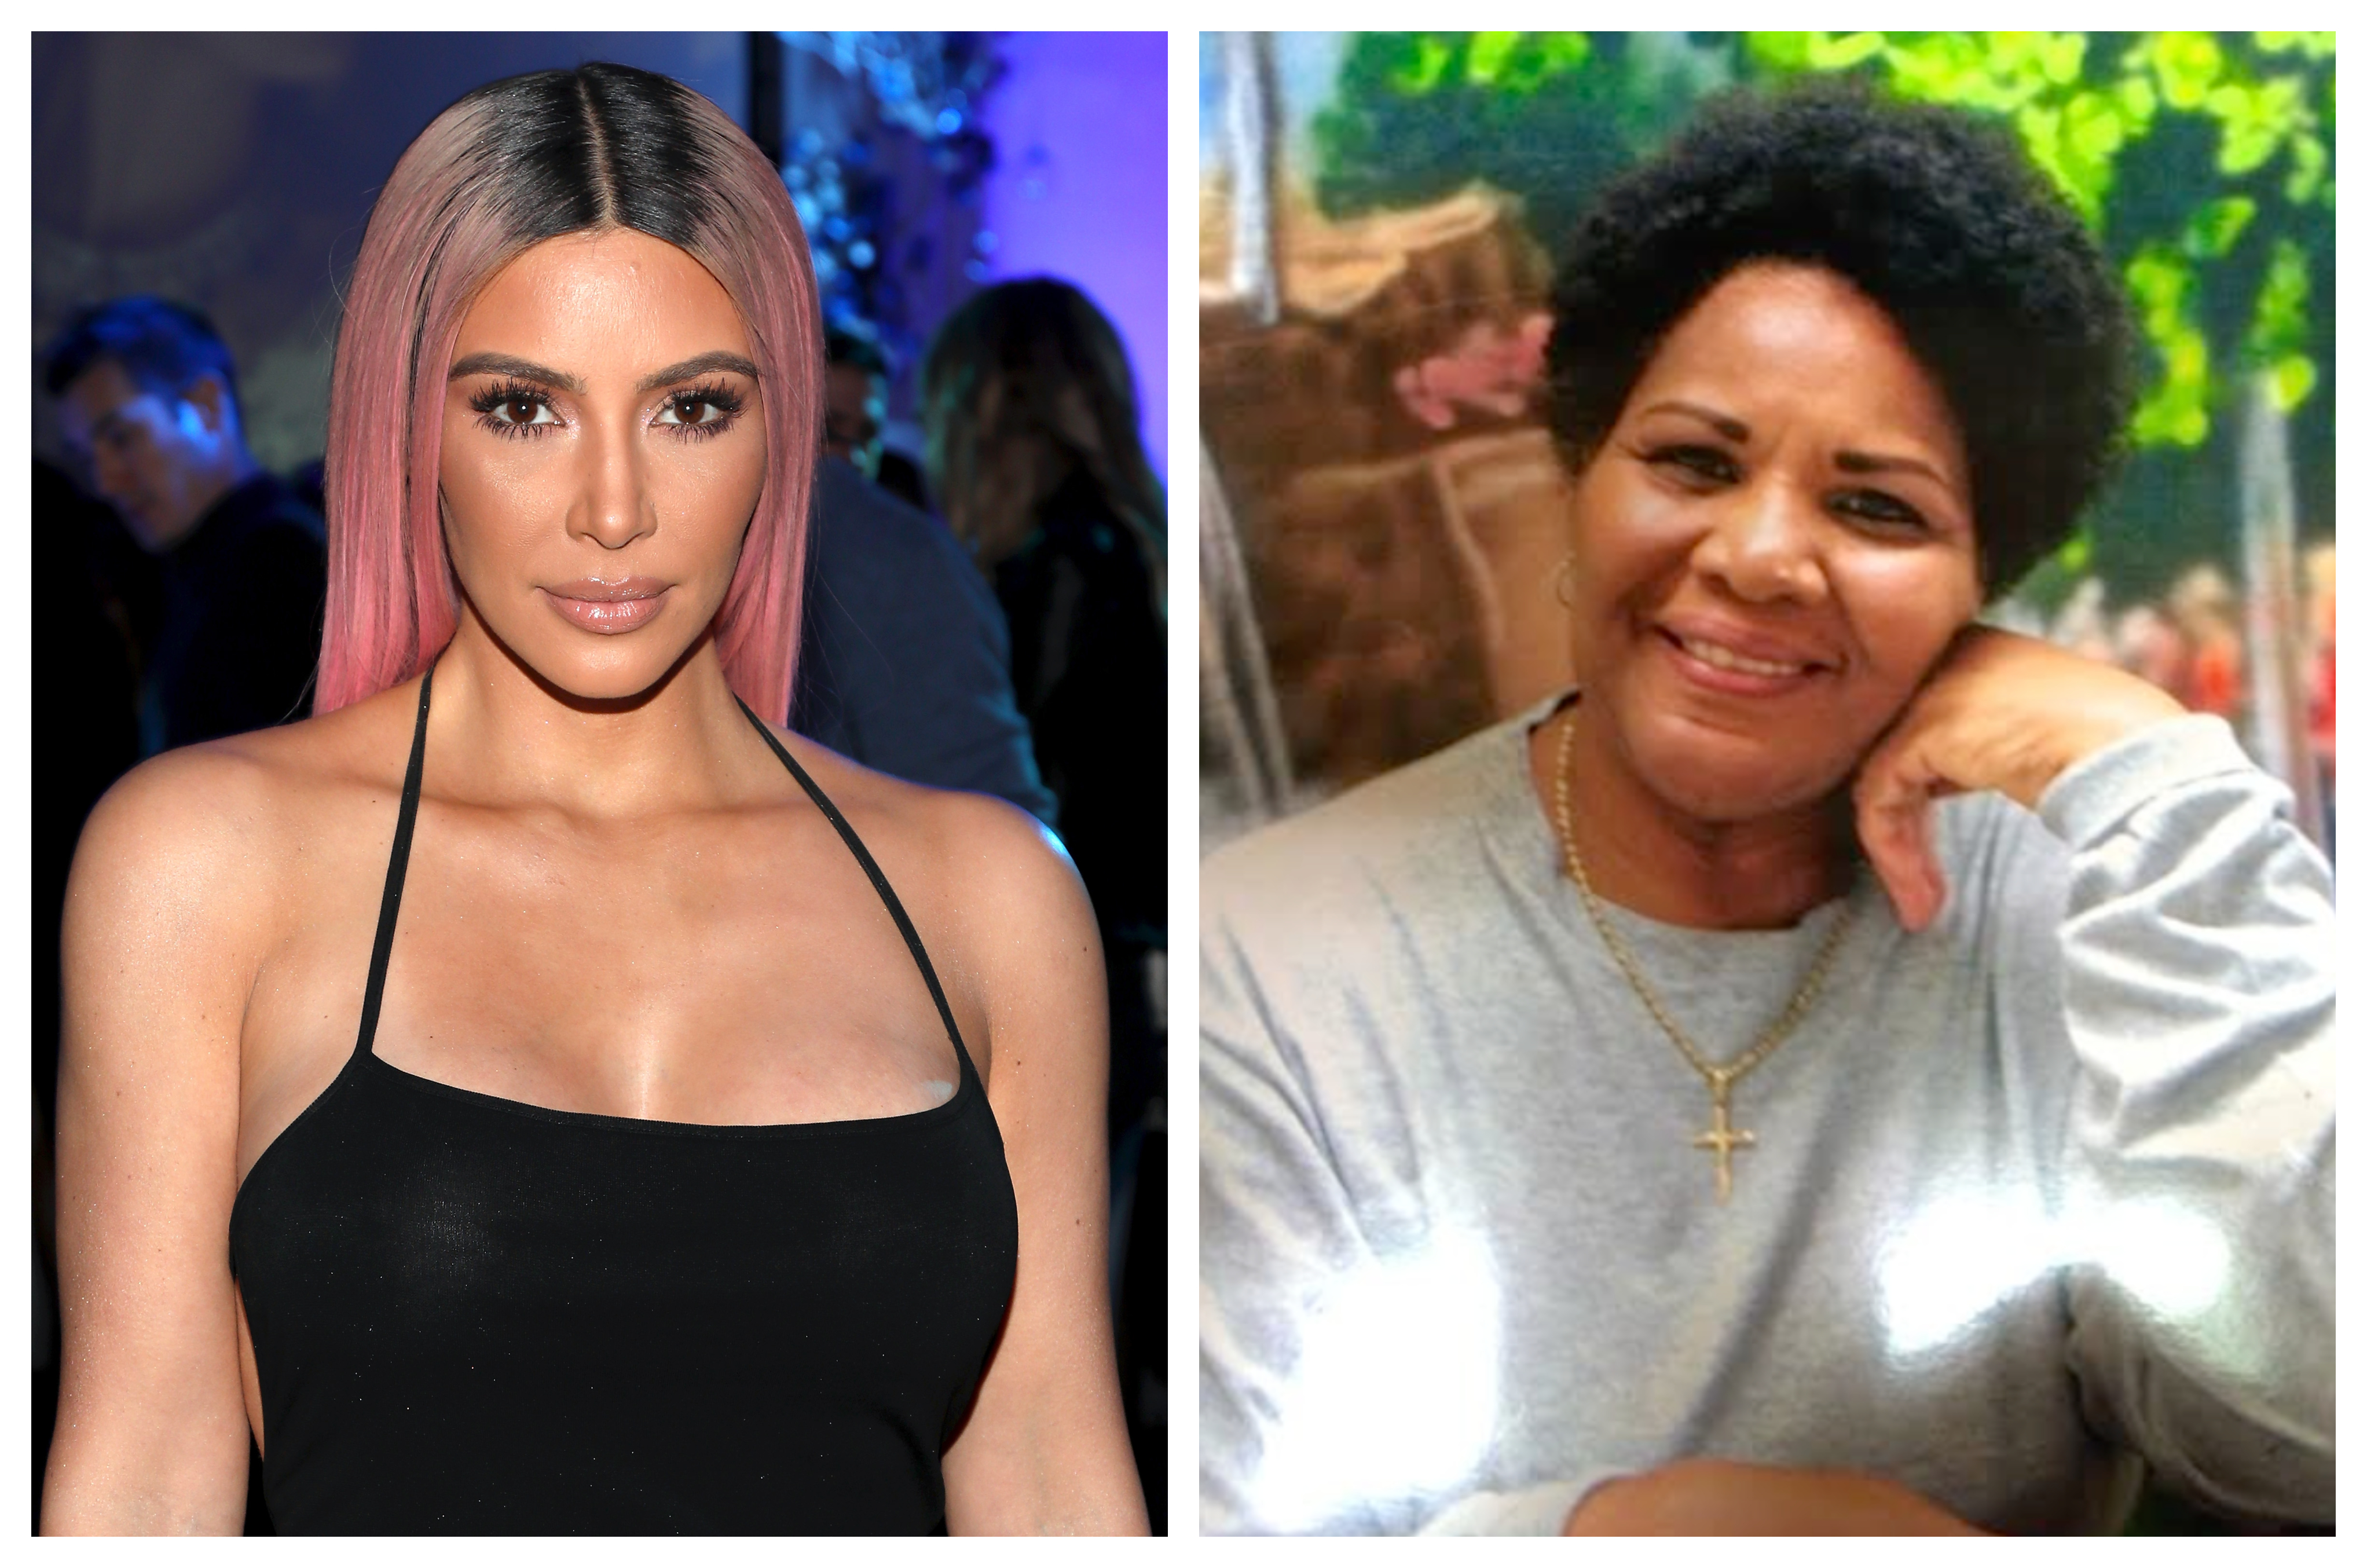 Kim Kardashian is meeting with Donald Trump to discuss pardoning Alice Johnson, a woman serving a life sentence for a non-violent offense